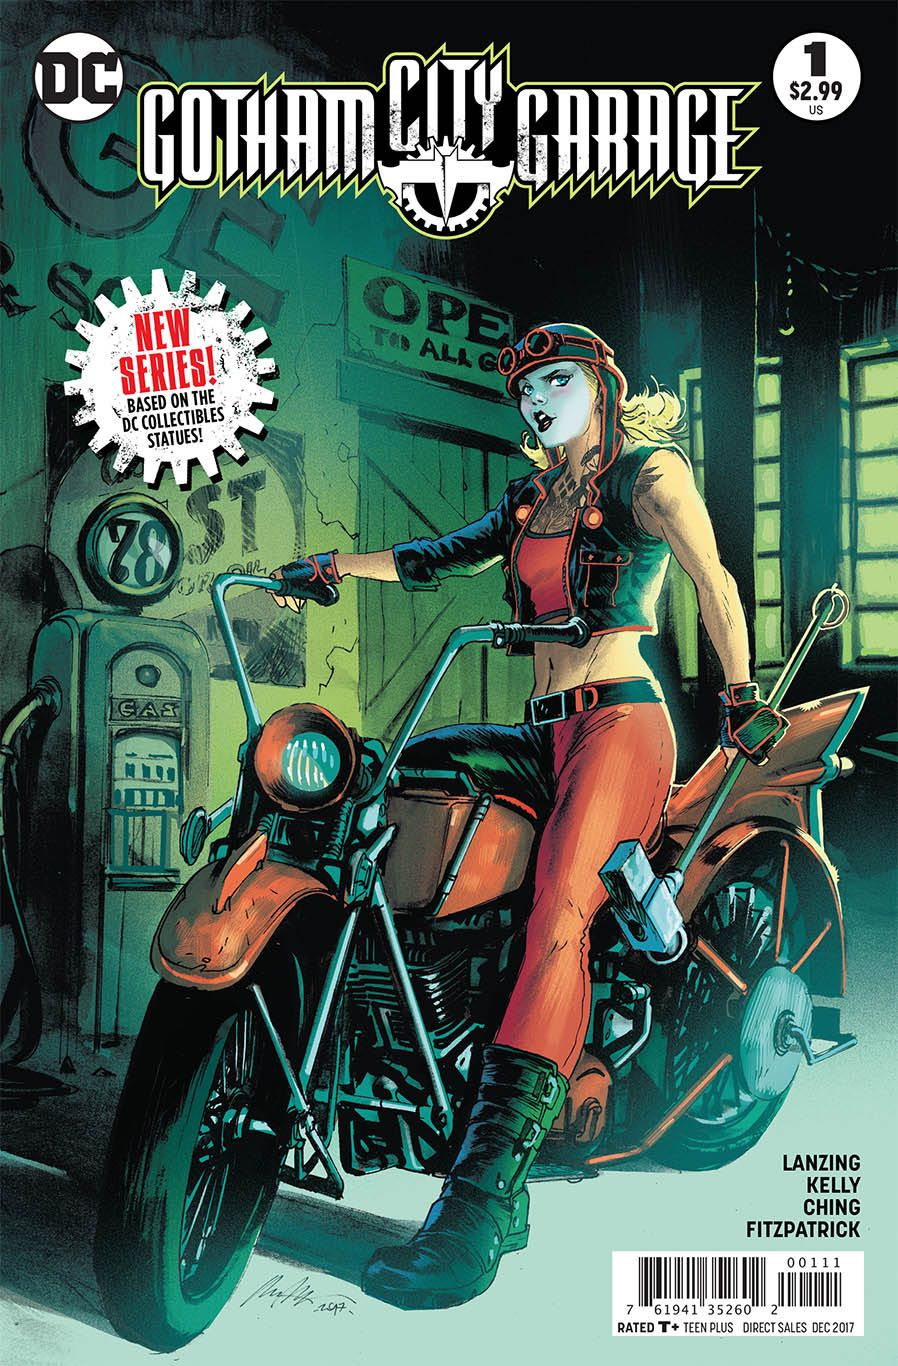 Episode 6 Cover of the Week! - (DC) Gotham City Garage #1Cover by Rafael AlbuquerqueWritten by Jackson Lanzing and Collin KellyIllustrated by Brian ChingDid the Content Match the Drapes? - No :'(